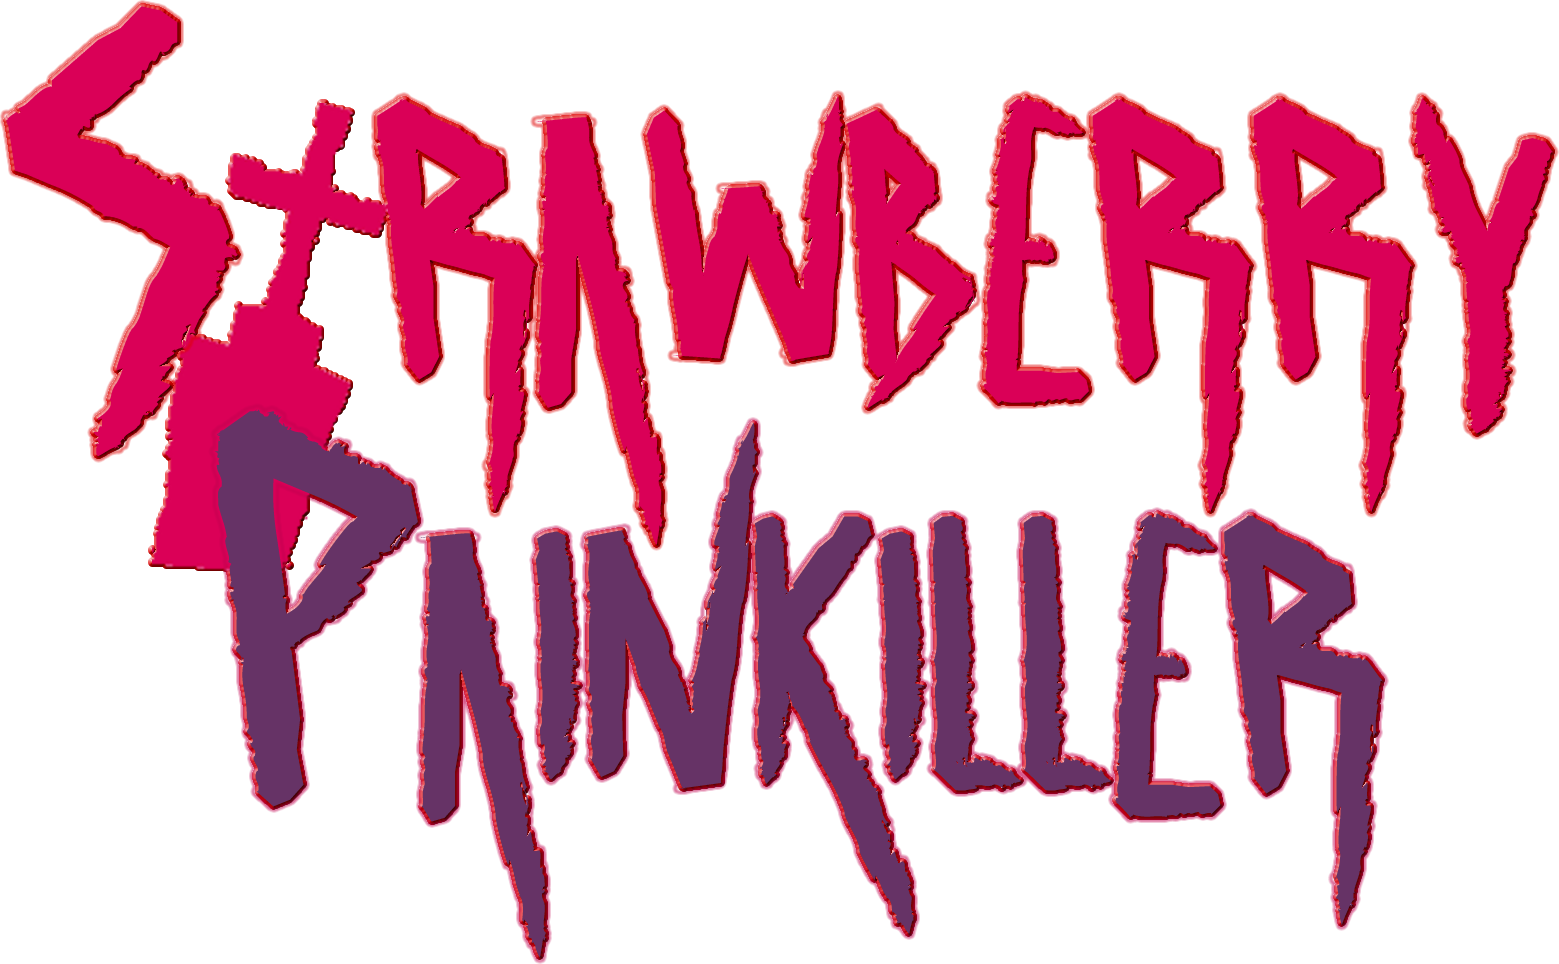 Strawberry Painkiller